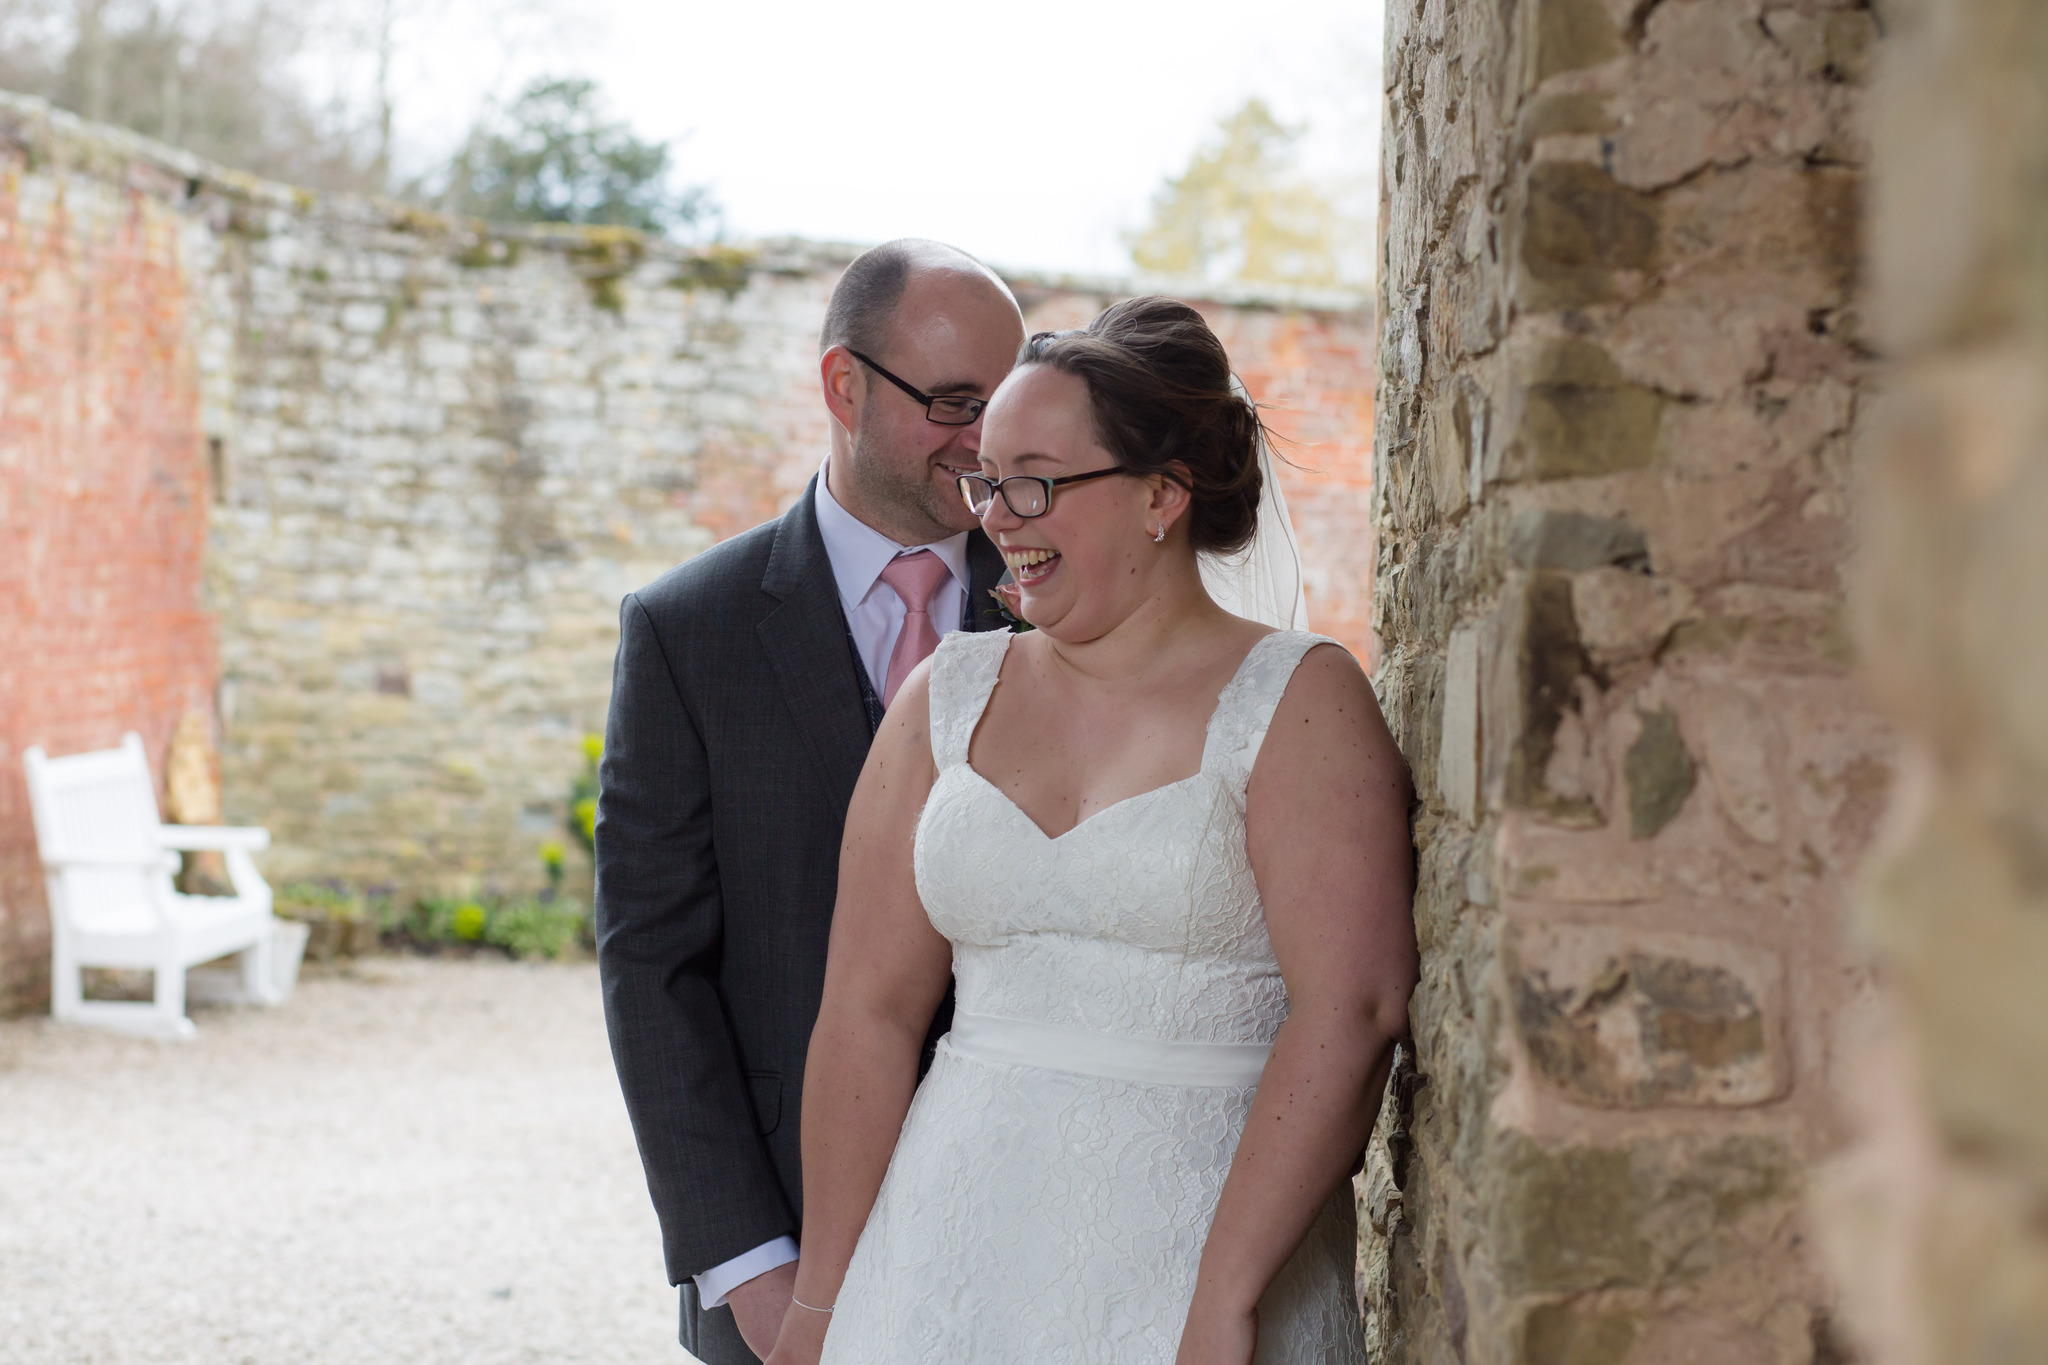 Portraits at Delbury Hall Spring wedding